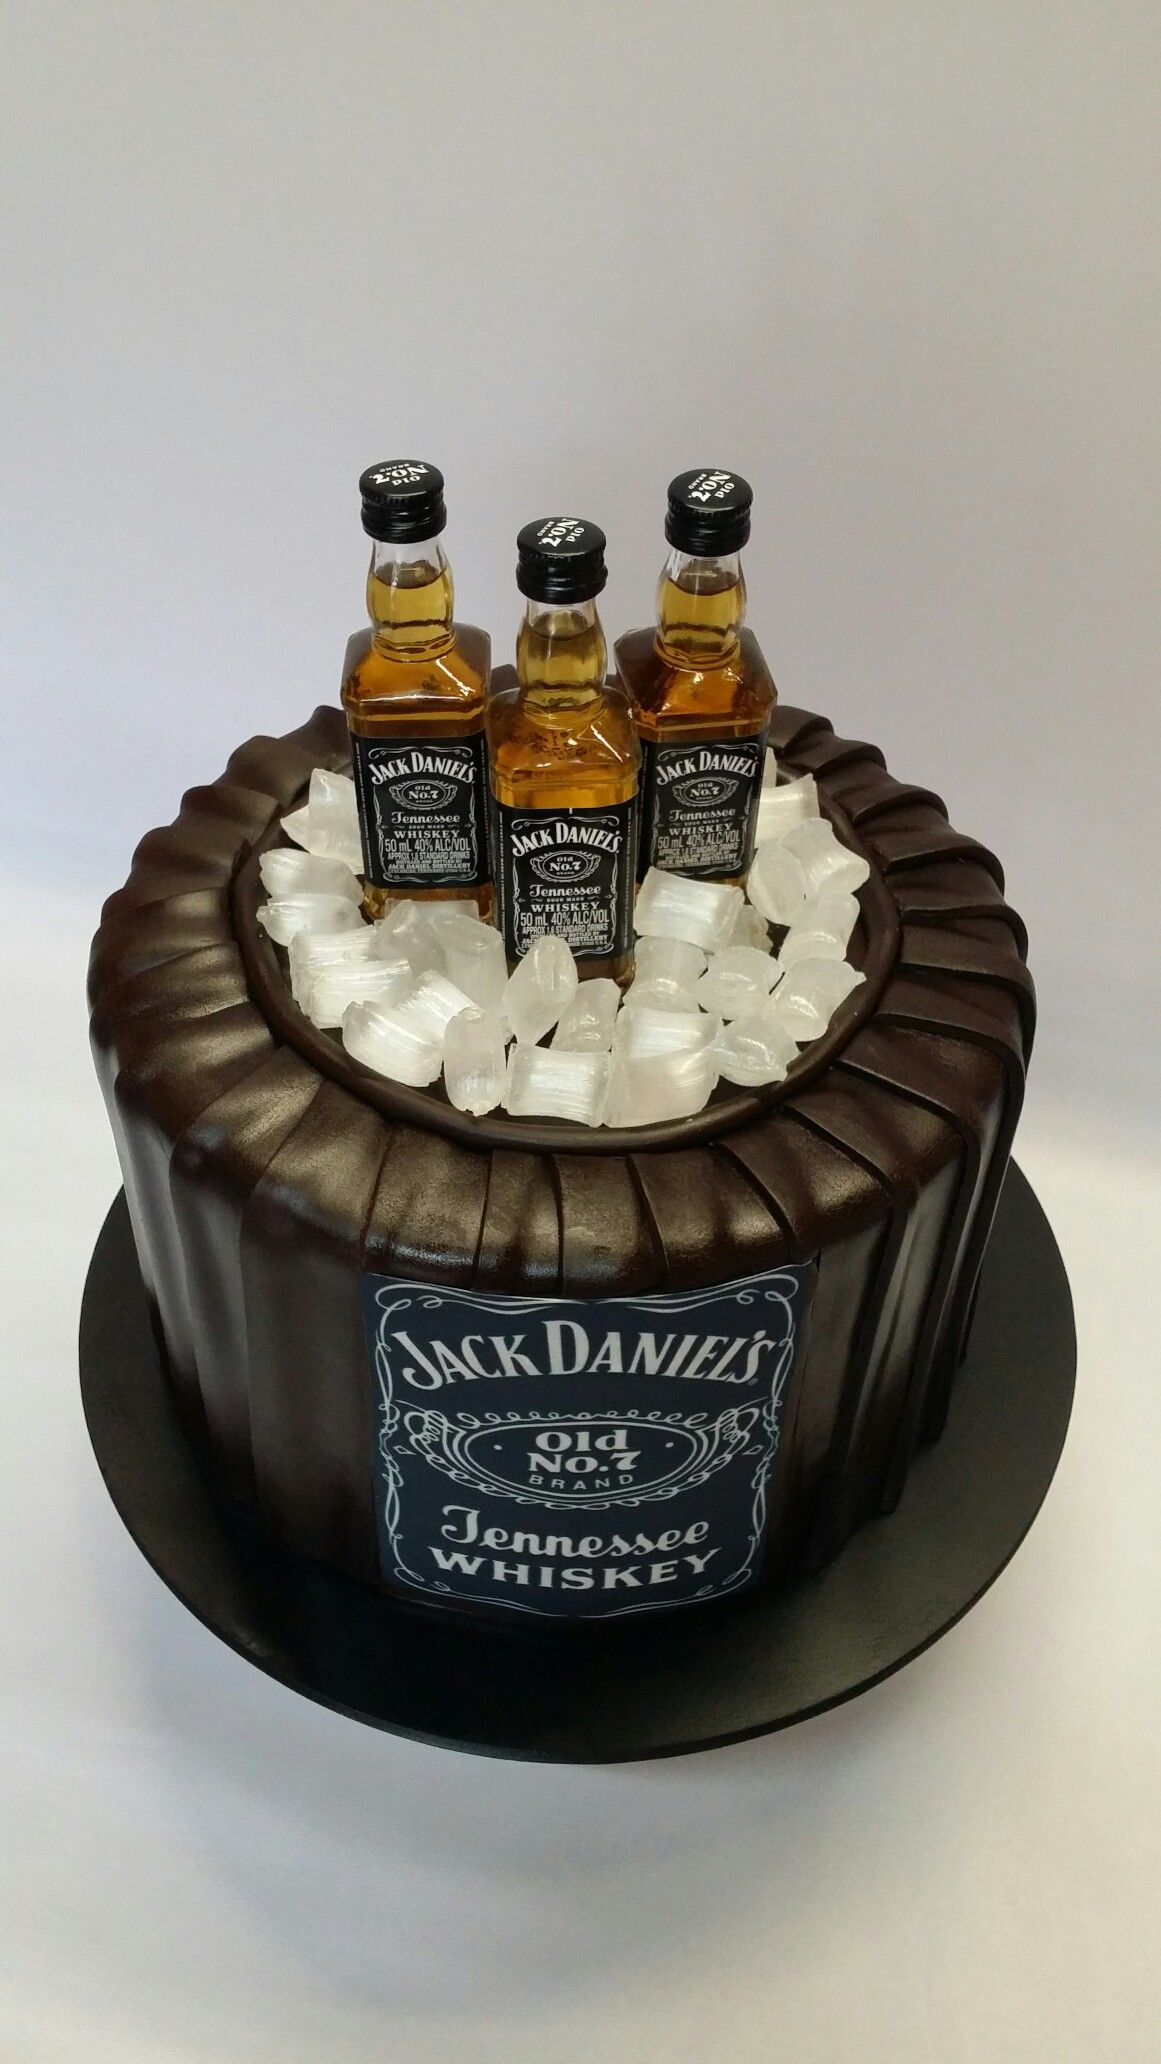 jack daniels cake vorlage pinterest torte 30 geburtstag kuchen und kuchen geburtstag. Black Bedroom Furniture Sets. Home Design Ideas